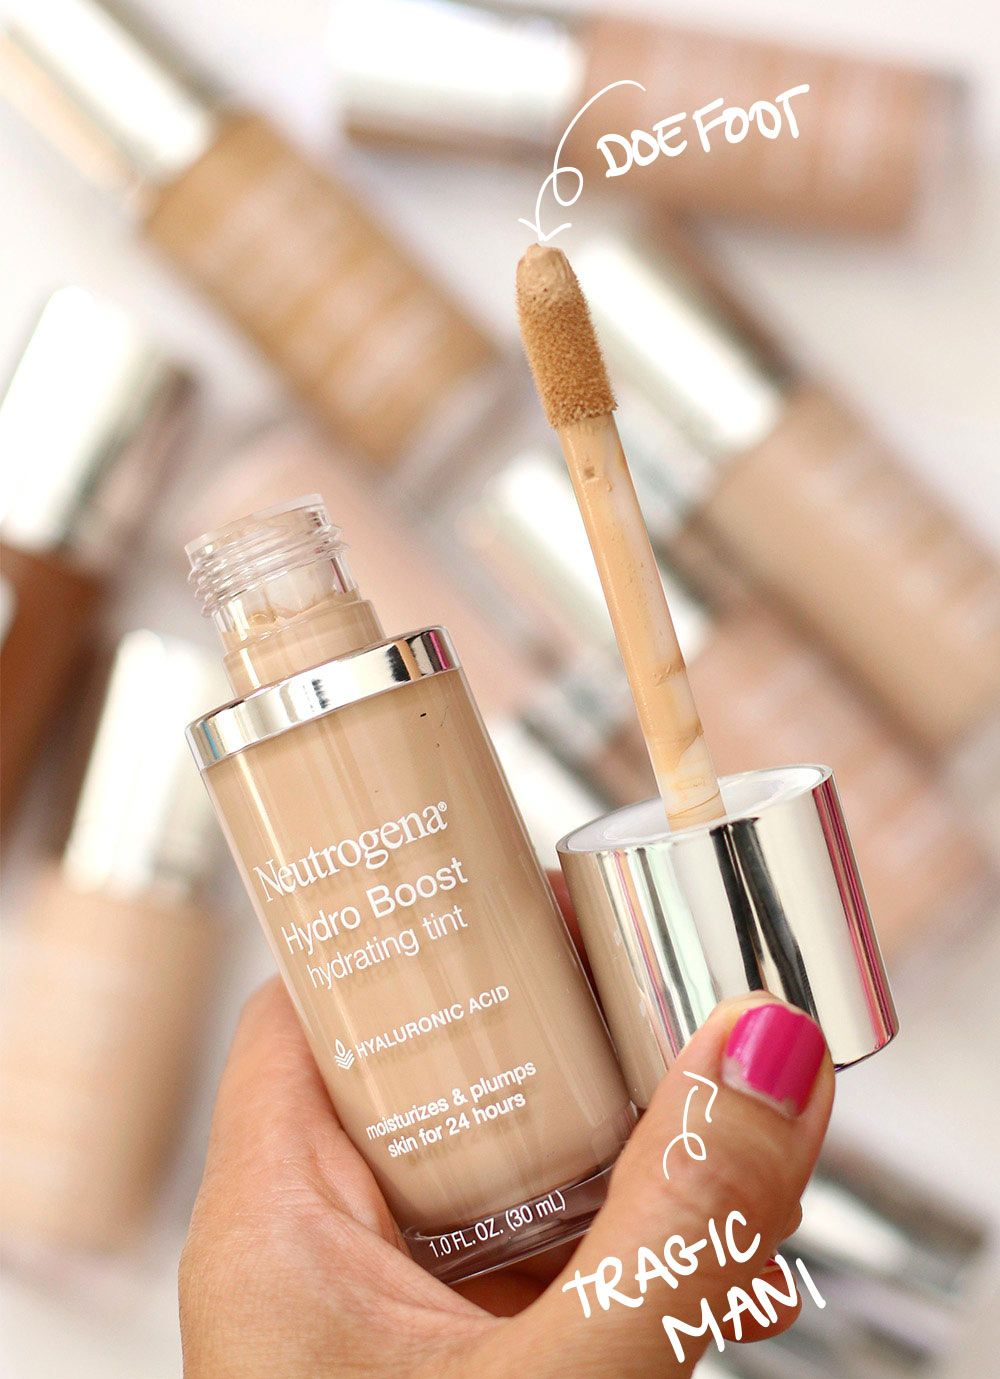 Neutrogena Hydro Boost Hydrating Tint Is a Lovely